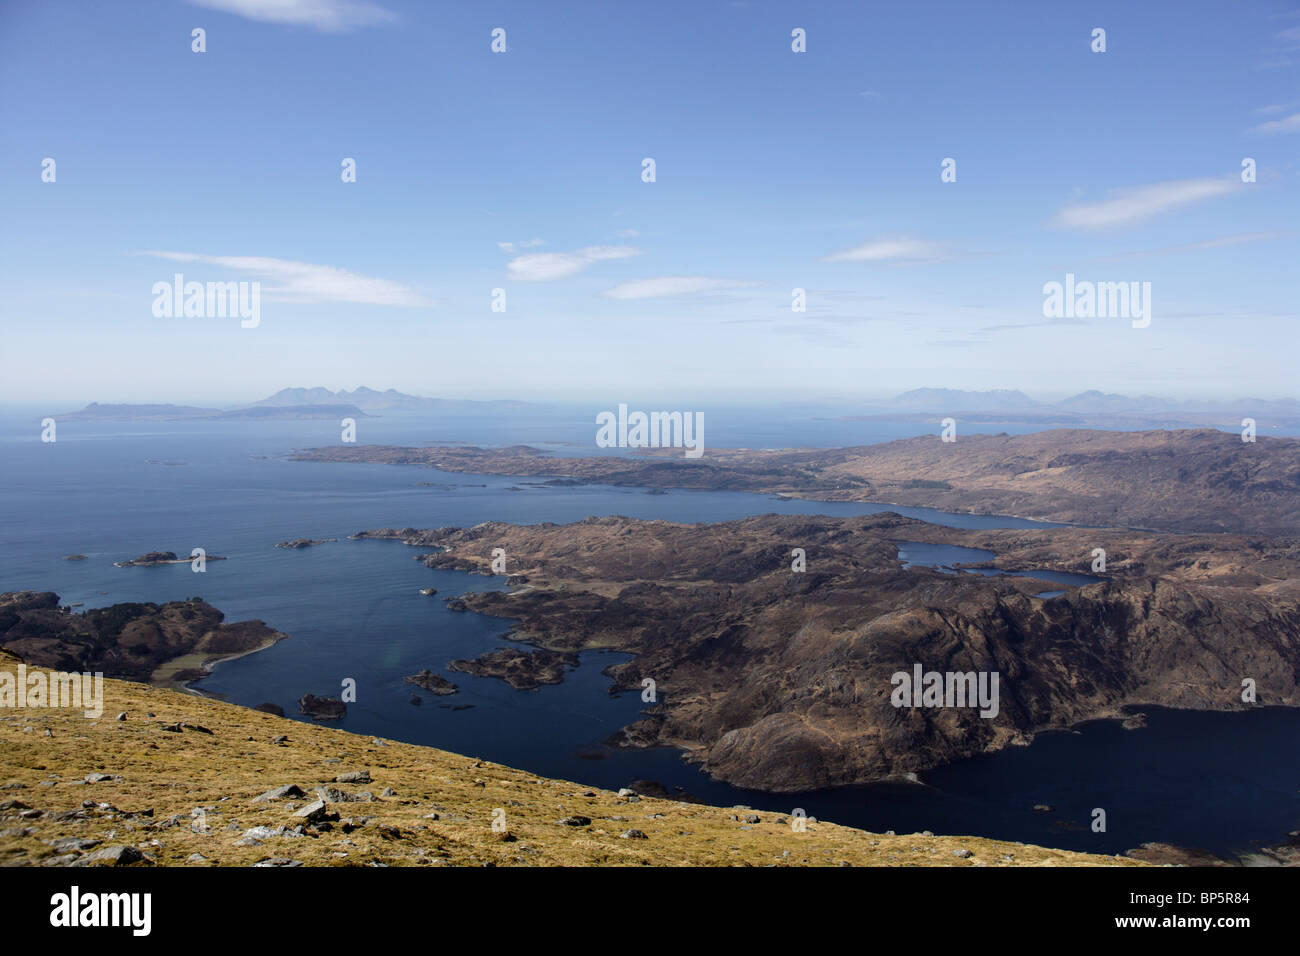 View from the Corbett Rois-bheinn looking onto Loch Ailort and the Hebrides - Stock Image